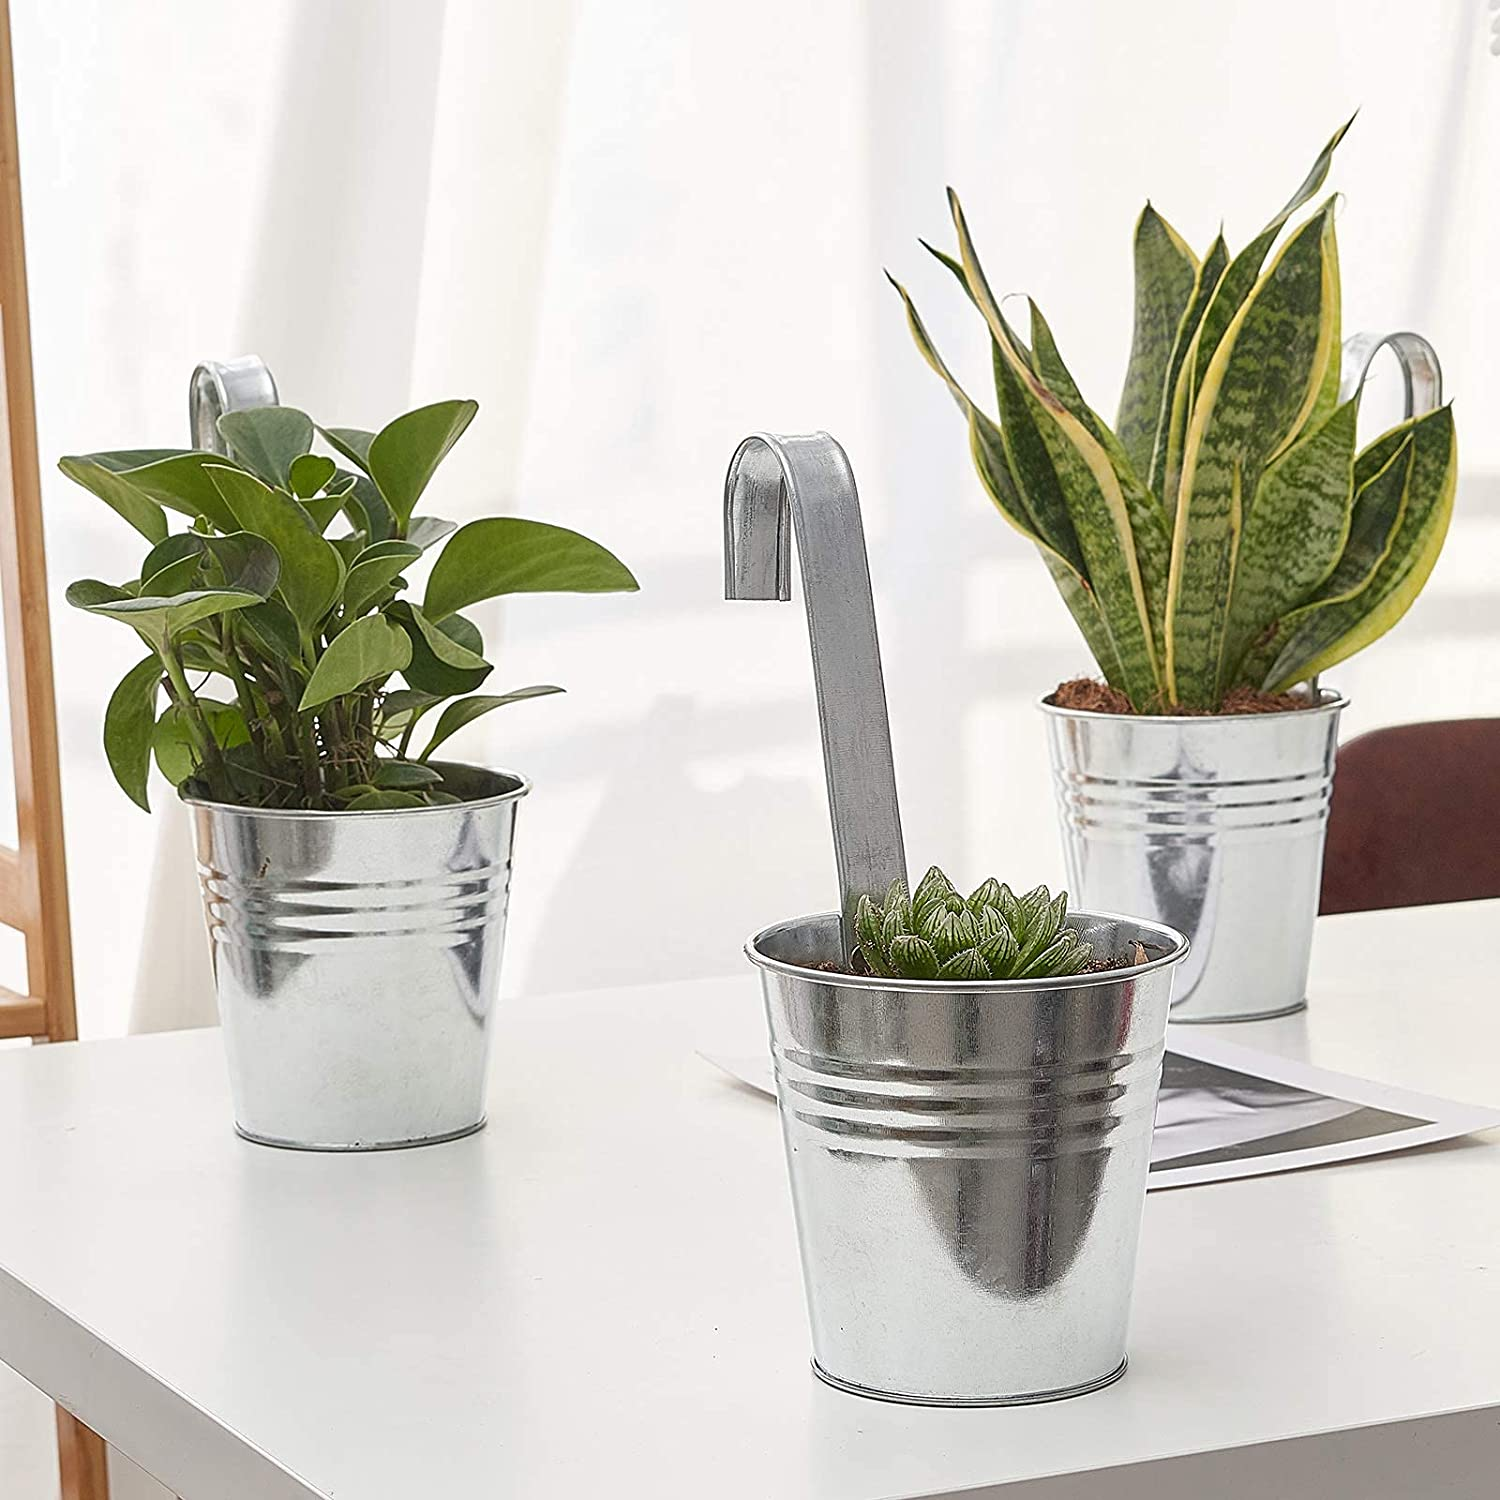 3Pcs Large New mail order Wall 40% OFF Cheap Sale Galvanized Metal Planter wi Iron Hanging Buckets